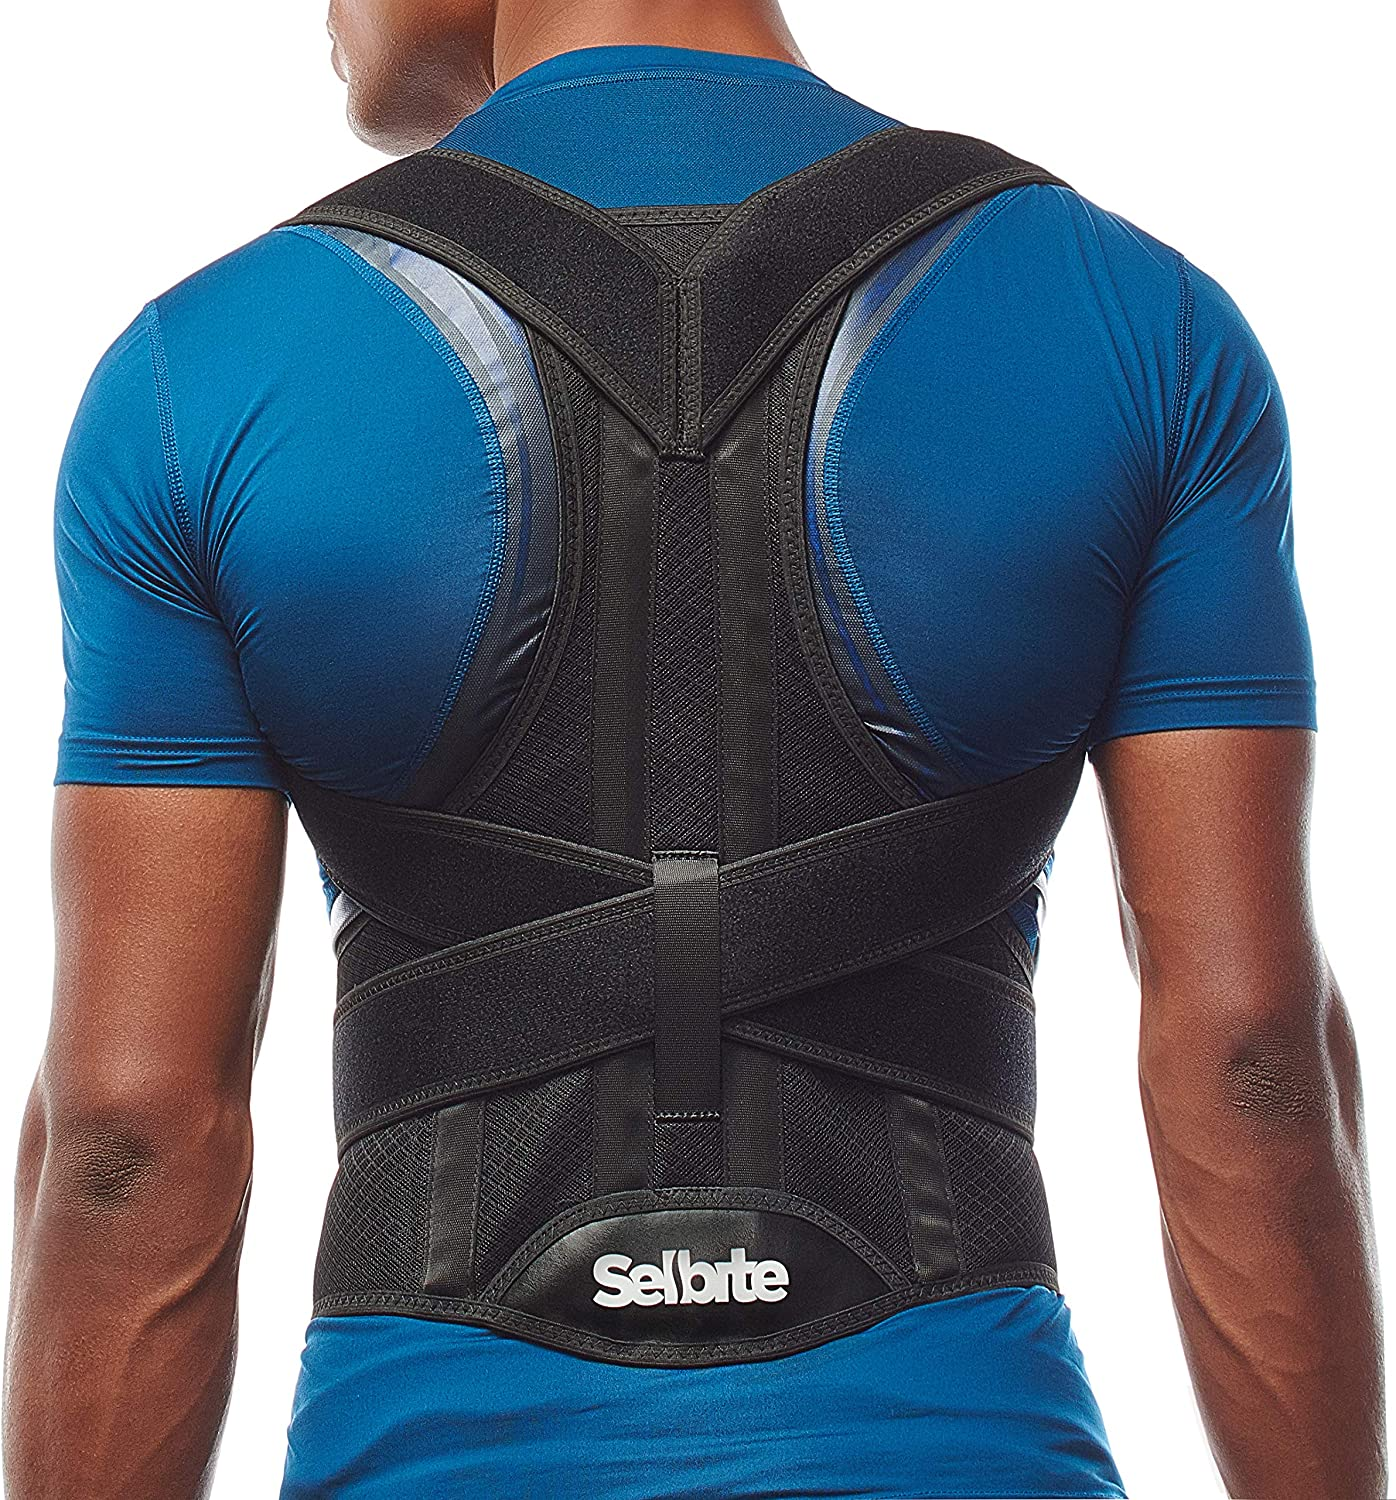 Back Brace Posture Corrector for Men and Women - Adjustable Posture Back Brace for Upper and Lower Back Pain Relief - Muscle Memory Support Straightener (L)